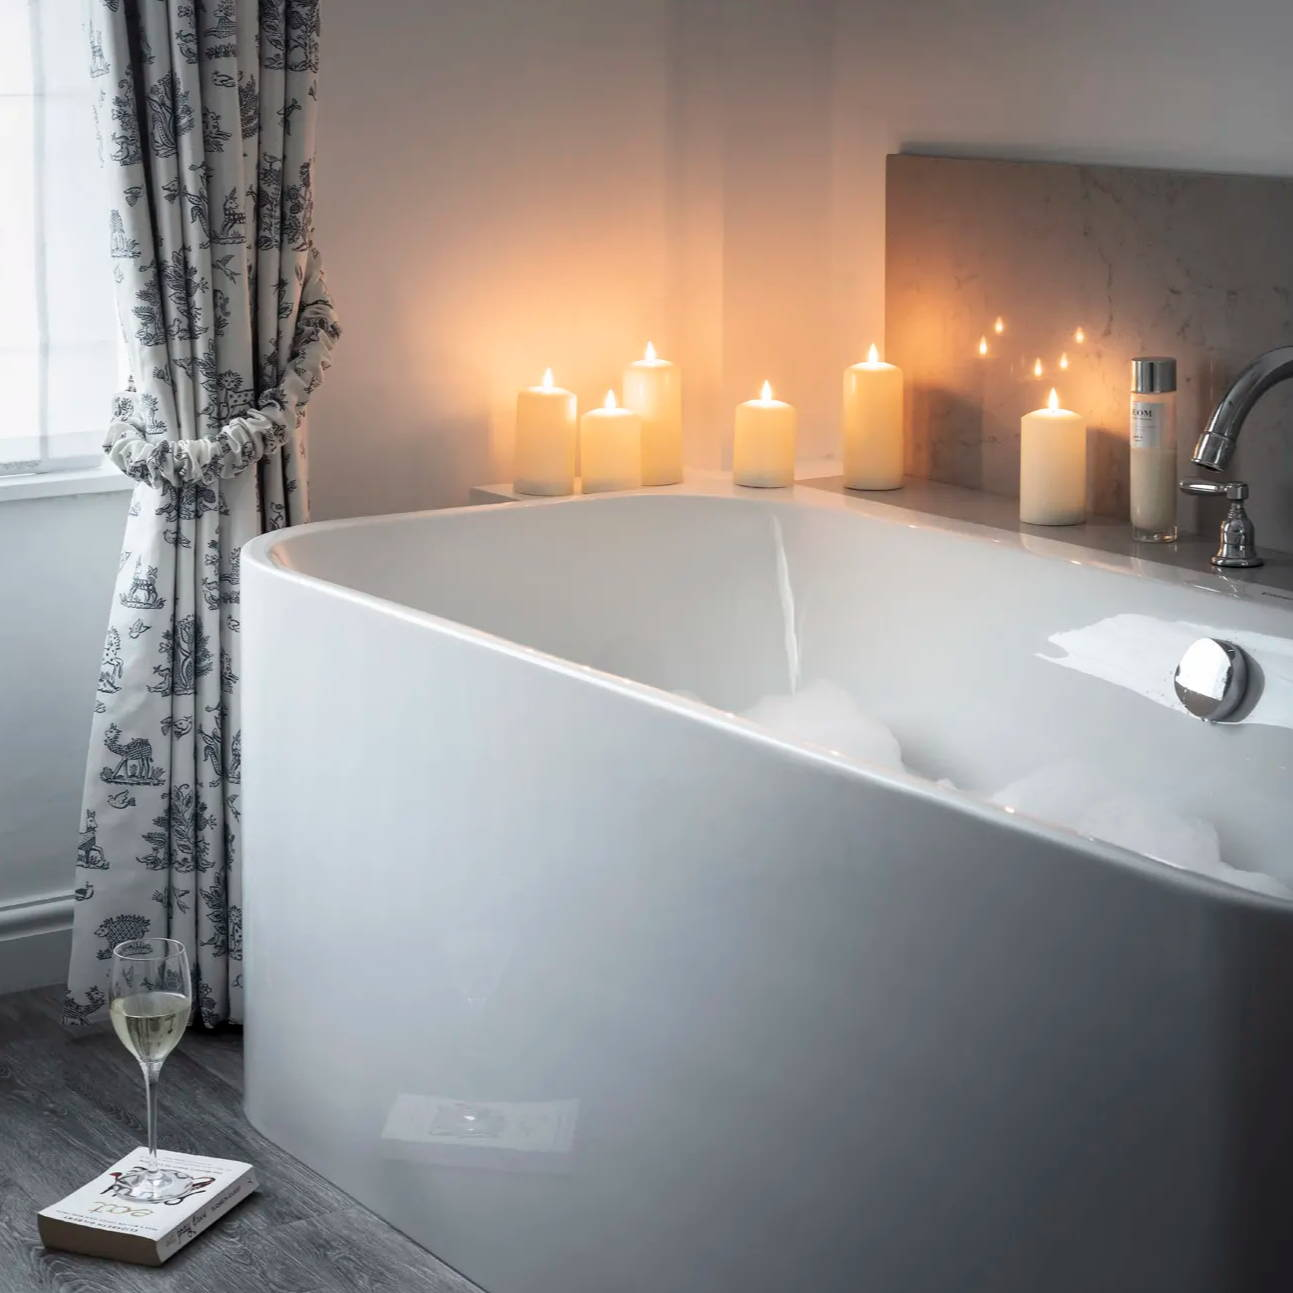 battery led pillar candles placed along the bath edge